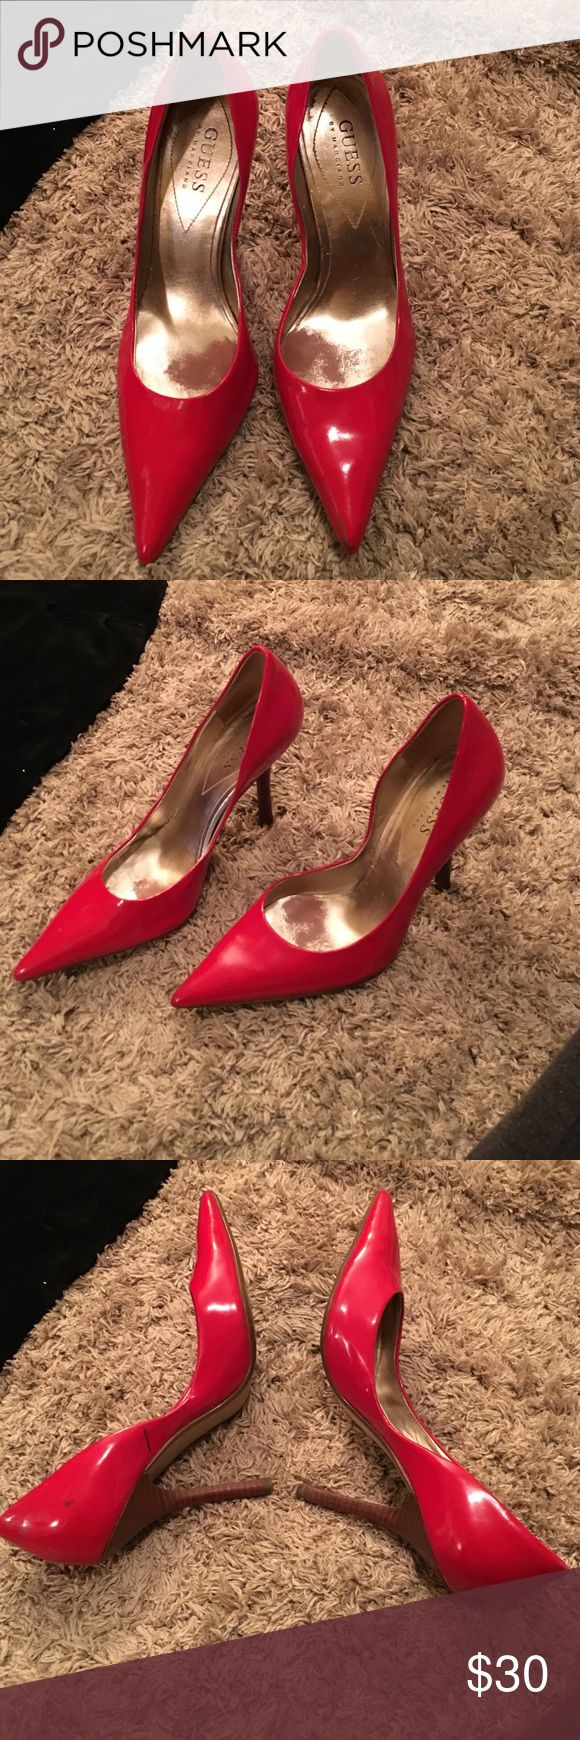 RED PATENT LEATHER PUMPS guess patent leather red pumps pretty much brand new Guess by Marciano Shoes